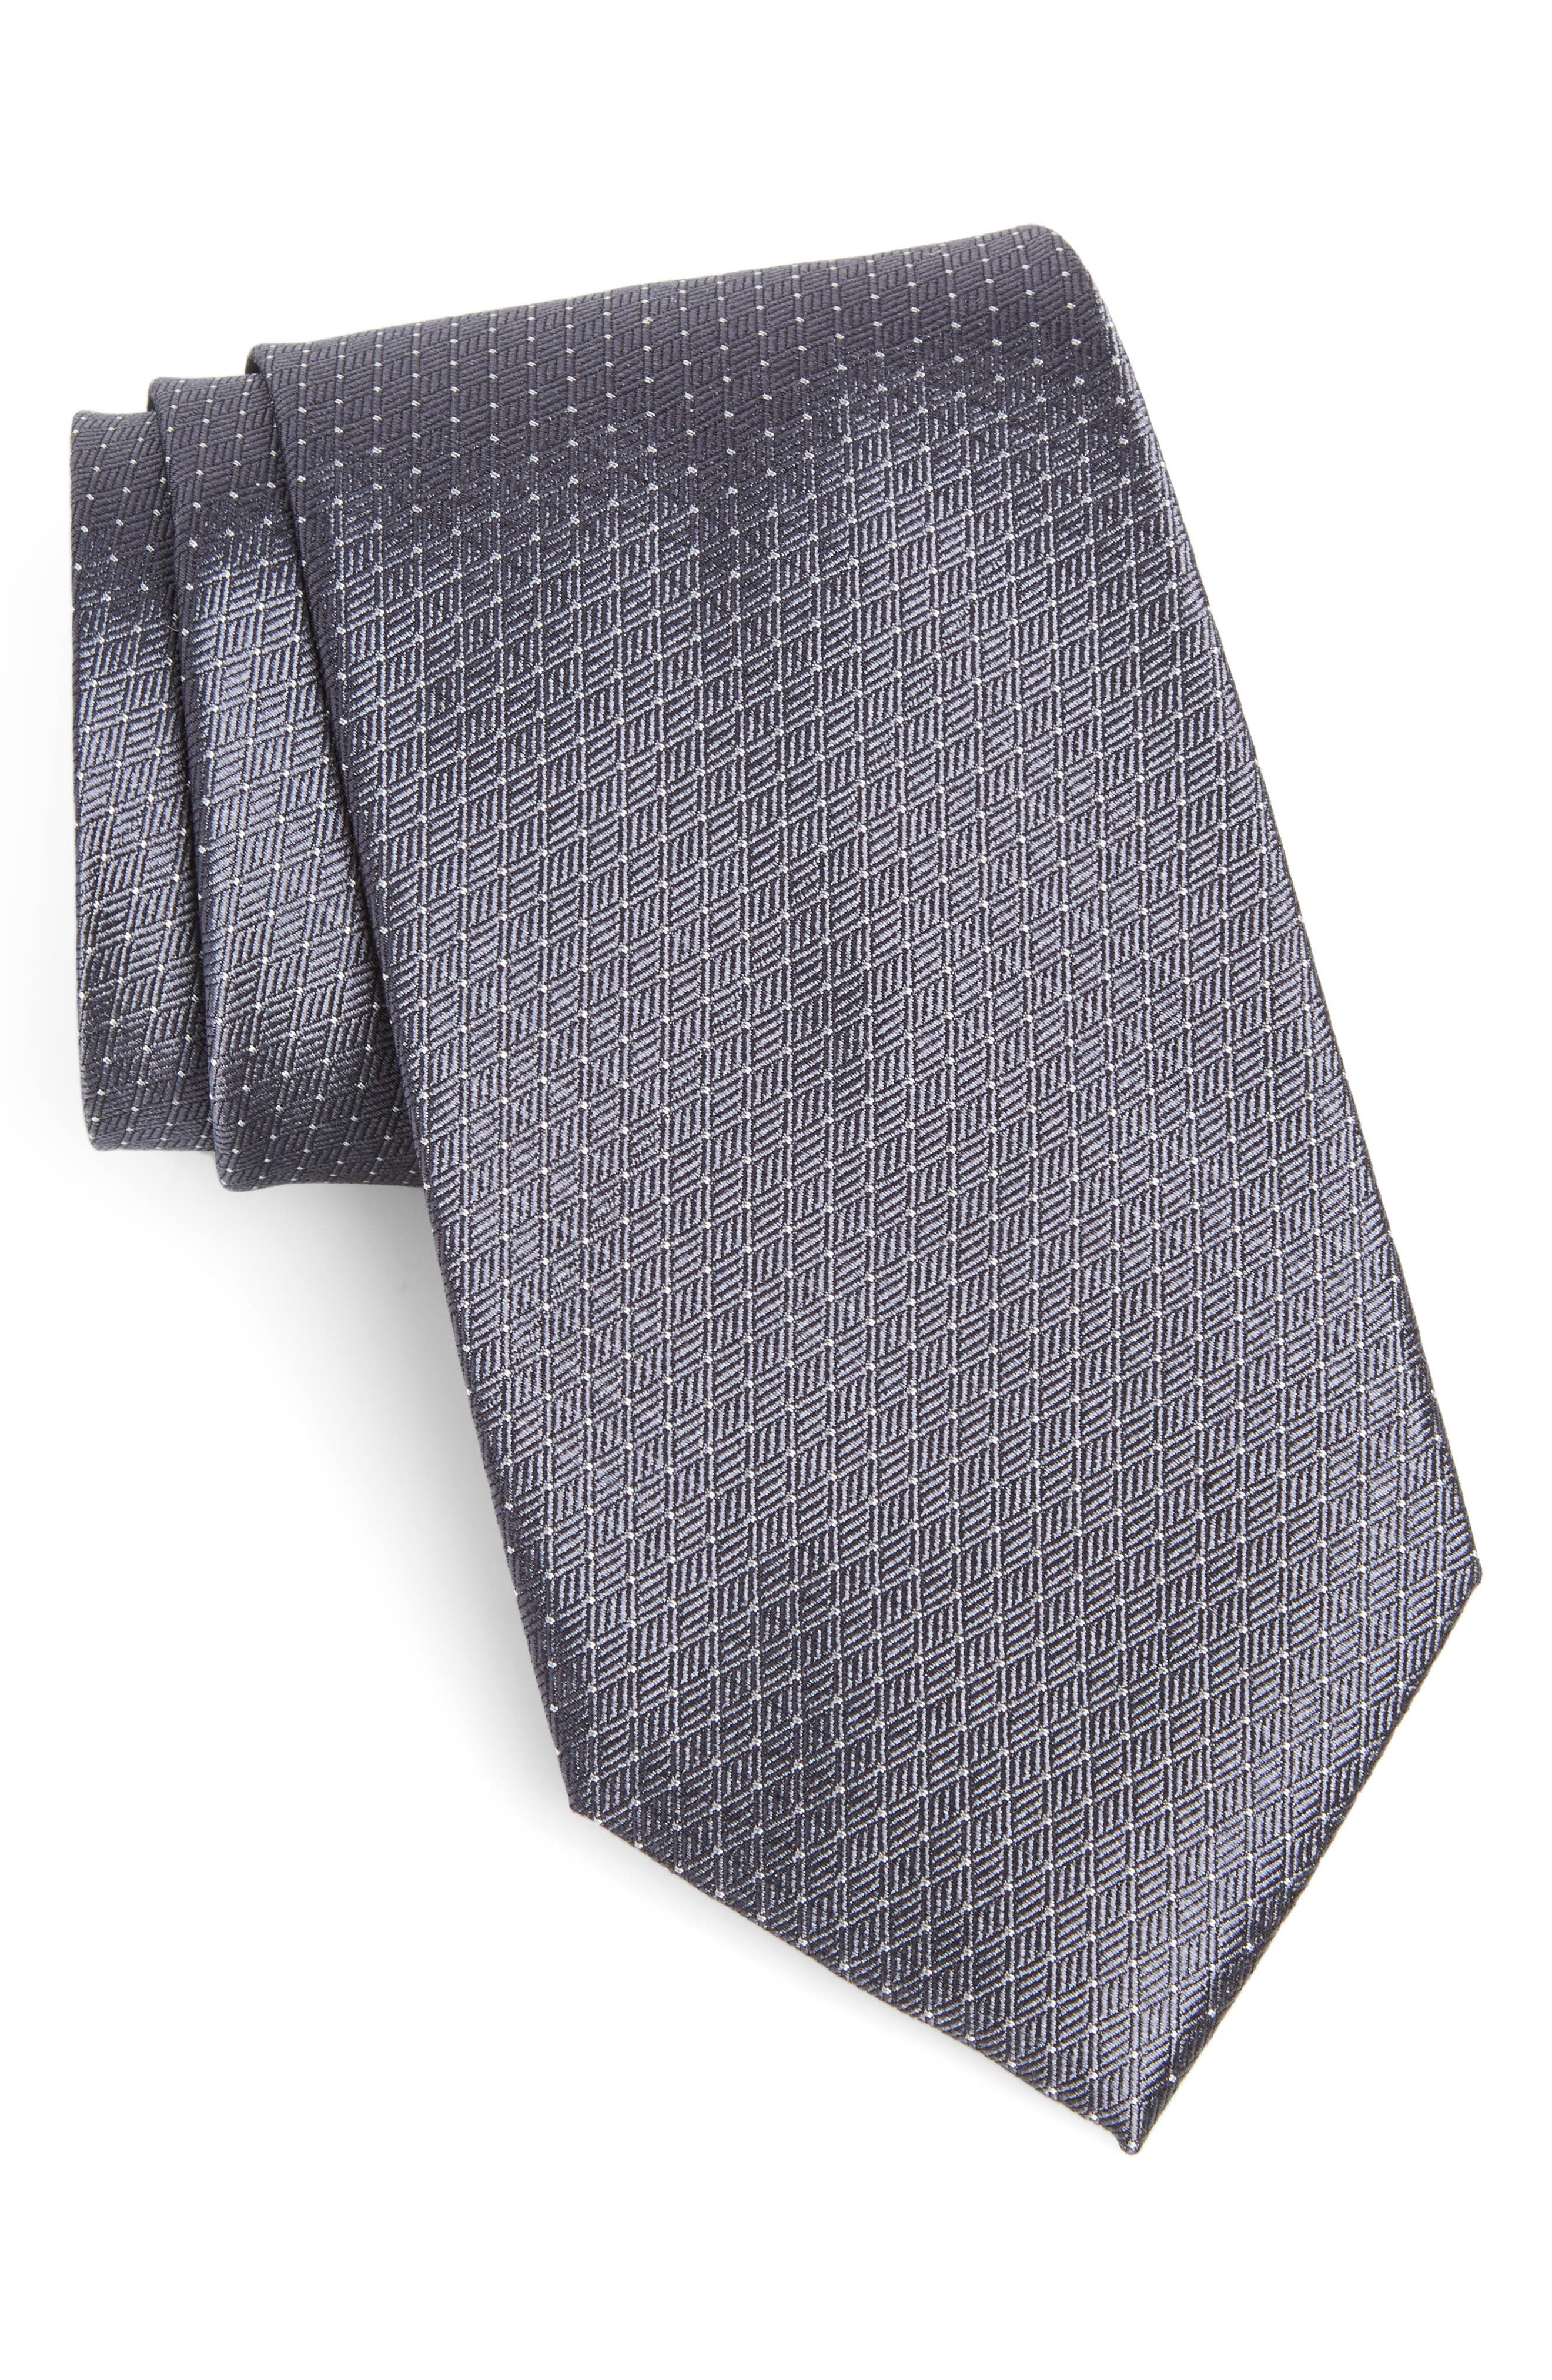 Main Image - Nordstrom Men's Shop Dot Silk Tie (X-Long)